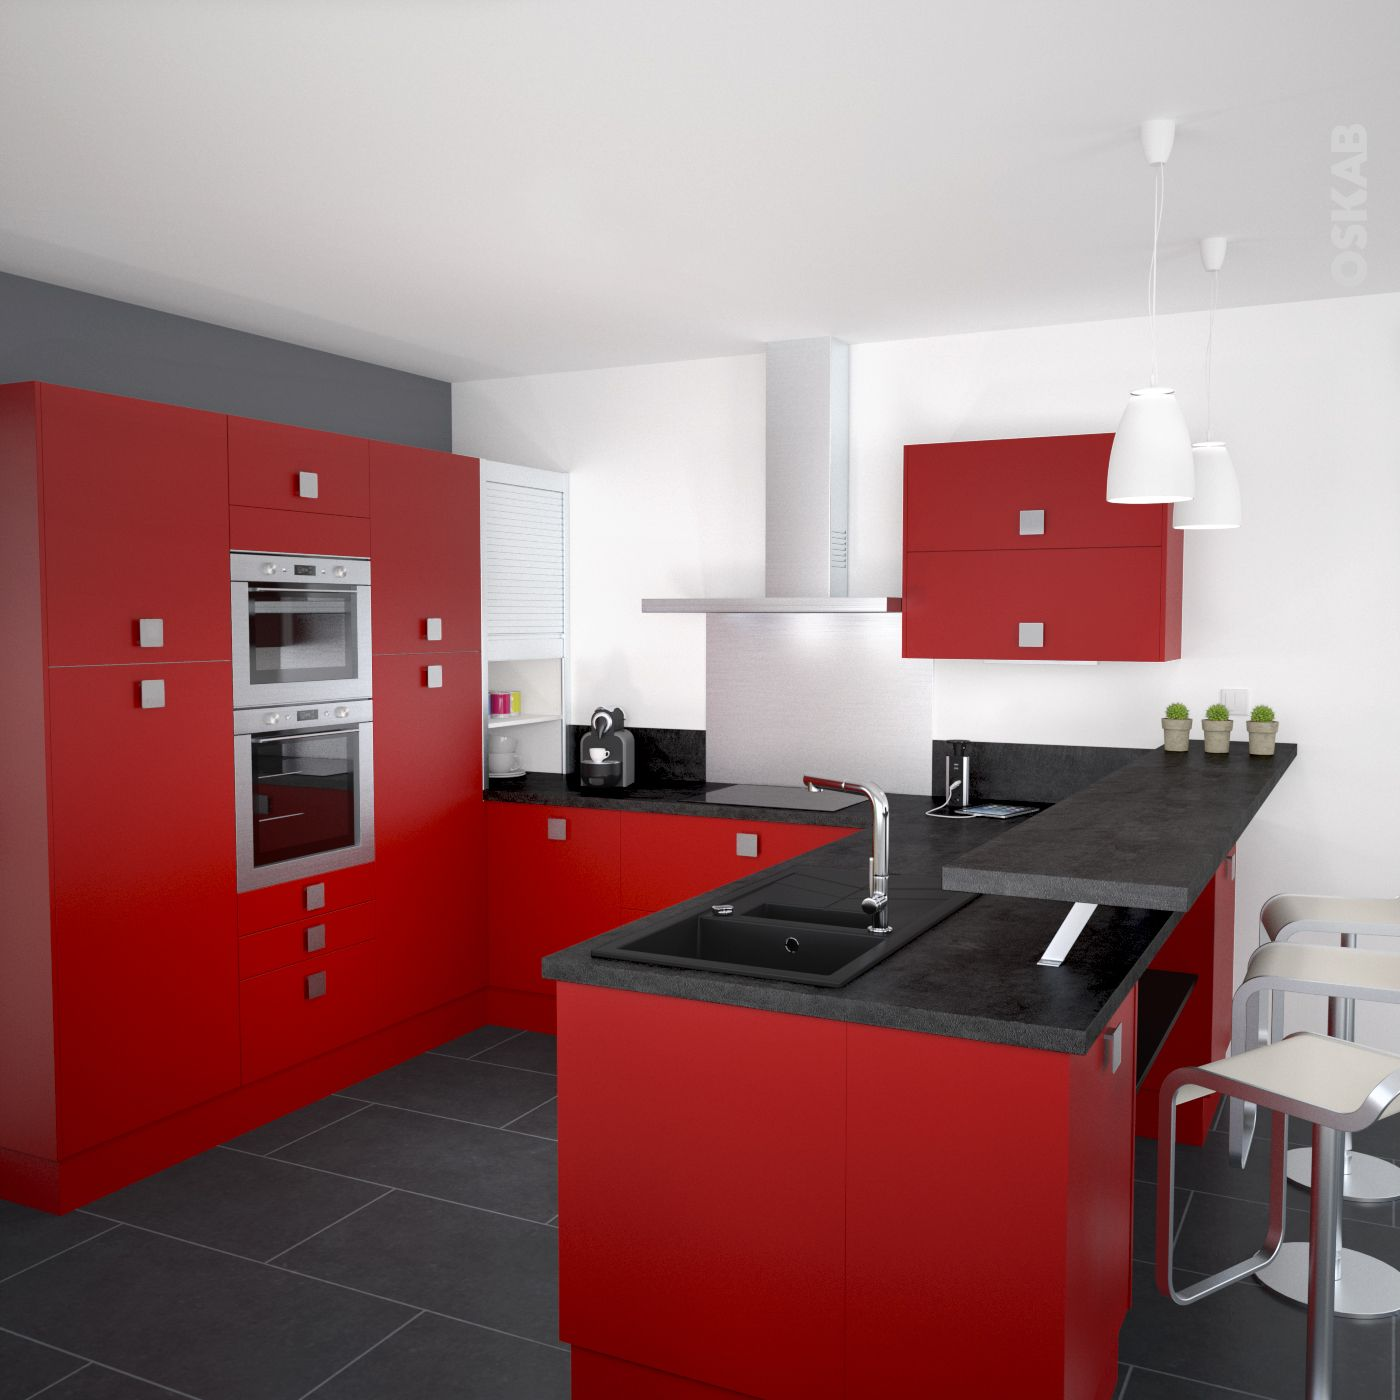 cuisine ouverte contemporaine couleur rouge avec finition. Black Bedroom Furniture Sets. Home Design Ideas